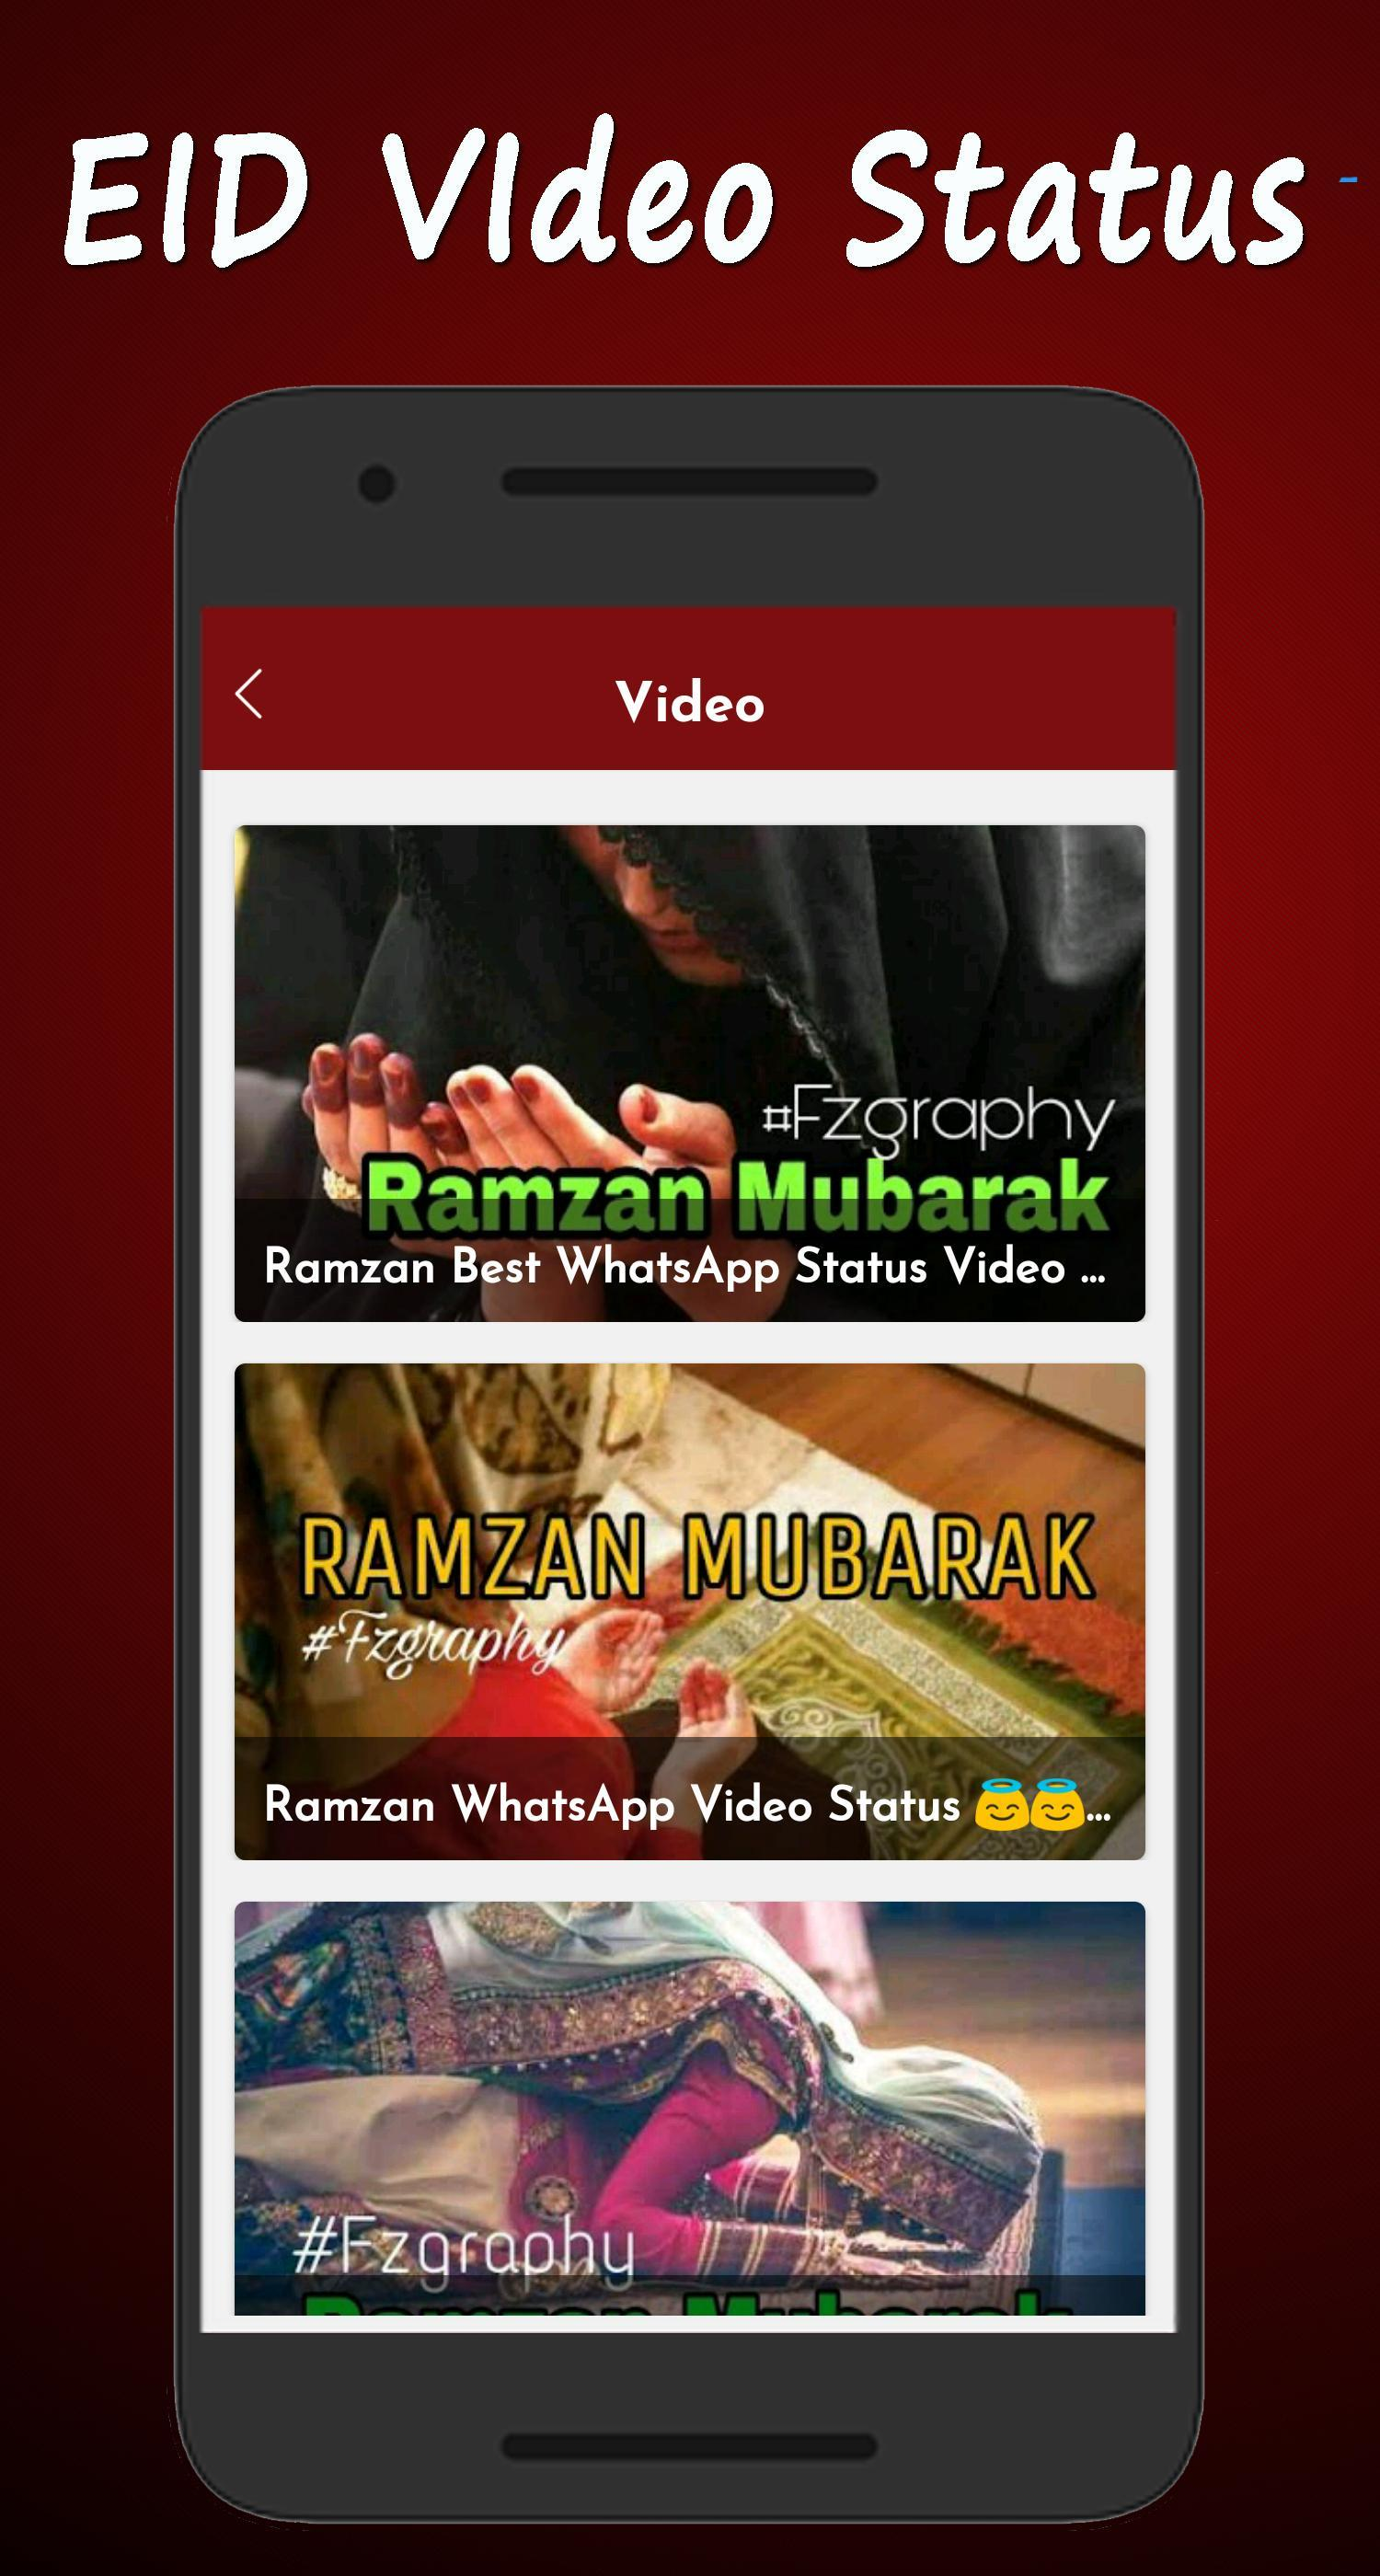 Ramdan Eid Video Status 2018 Hd Video Song For Android